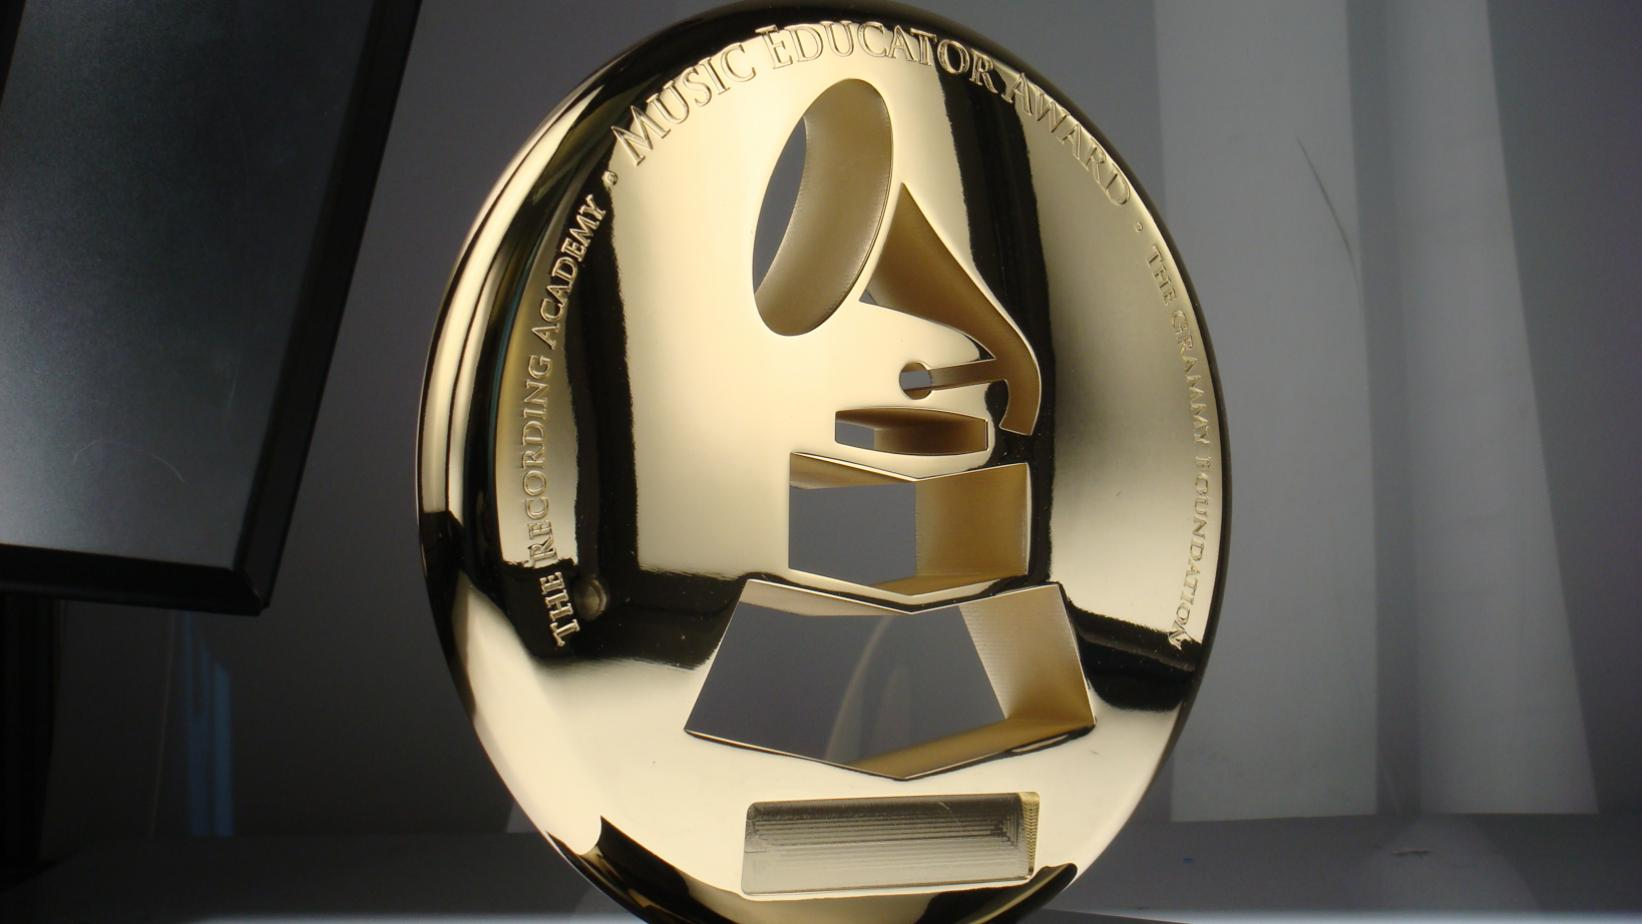 The Recording Academy and GRAMMY Museum's Music Educator Award